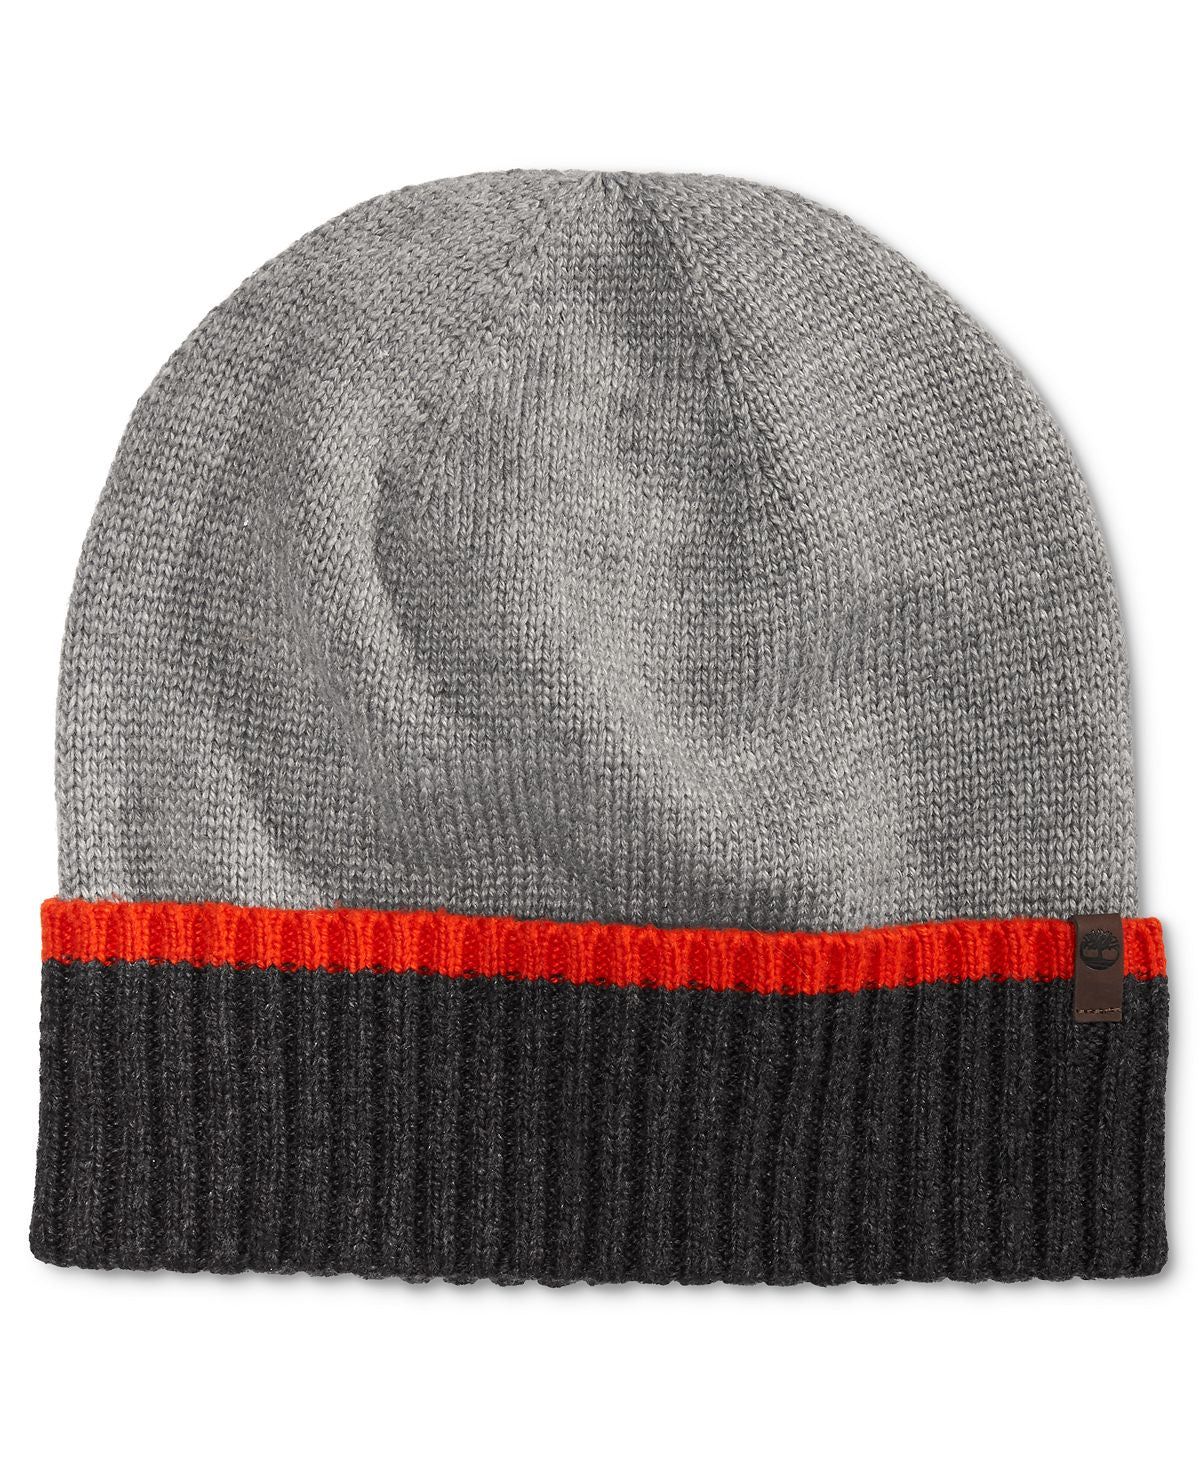 Timberland Colorblocked Cuffed Hat Gray